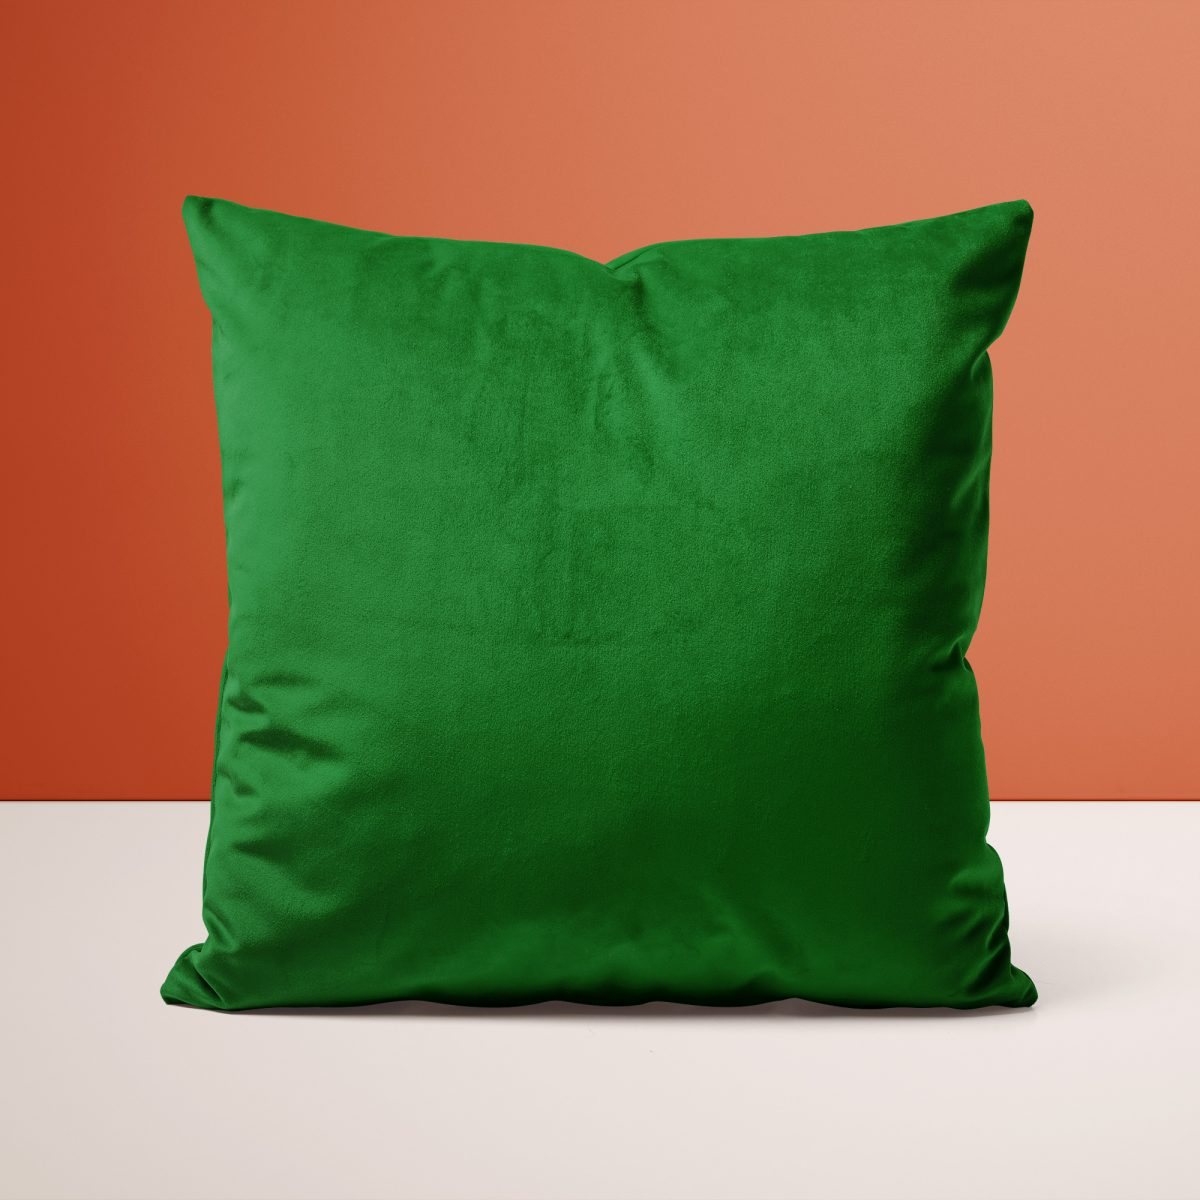 emerald-green-covers-of-the-rainbow-1